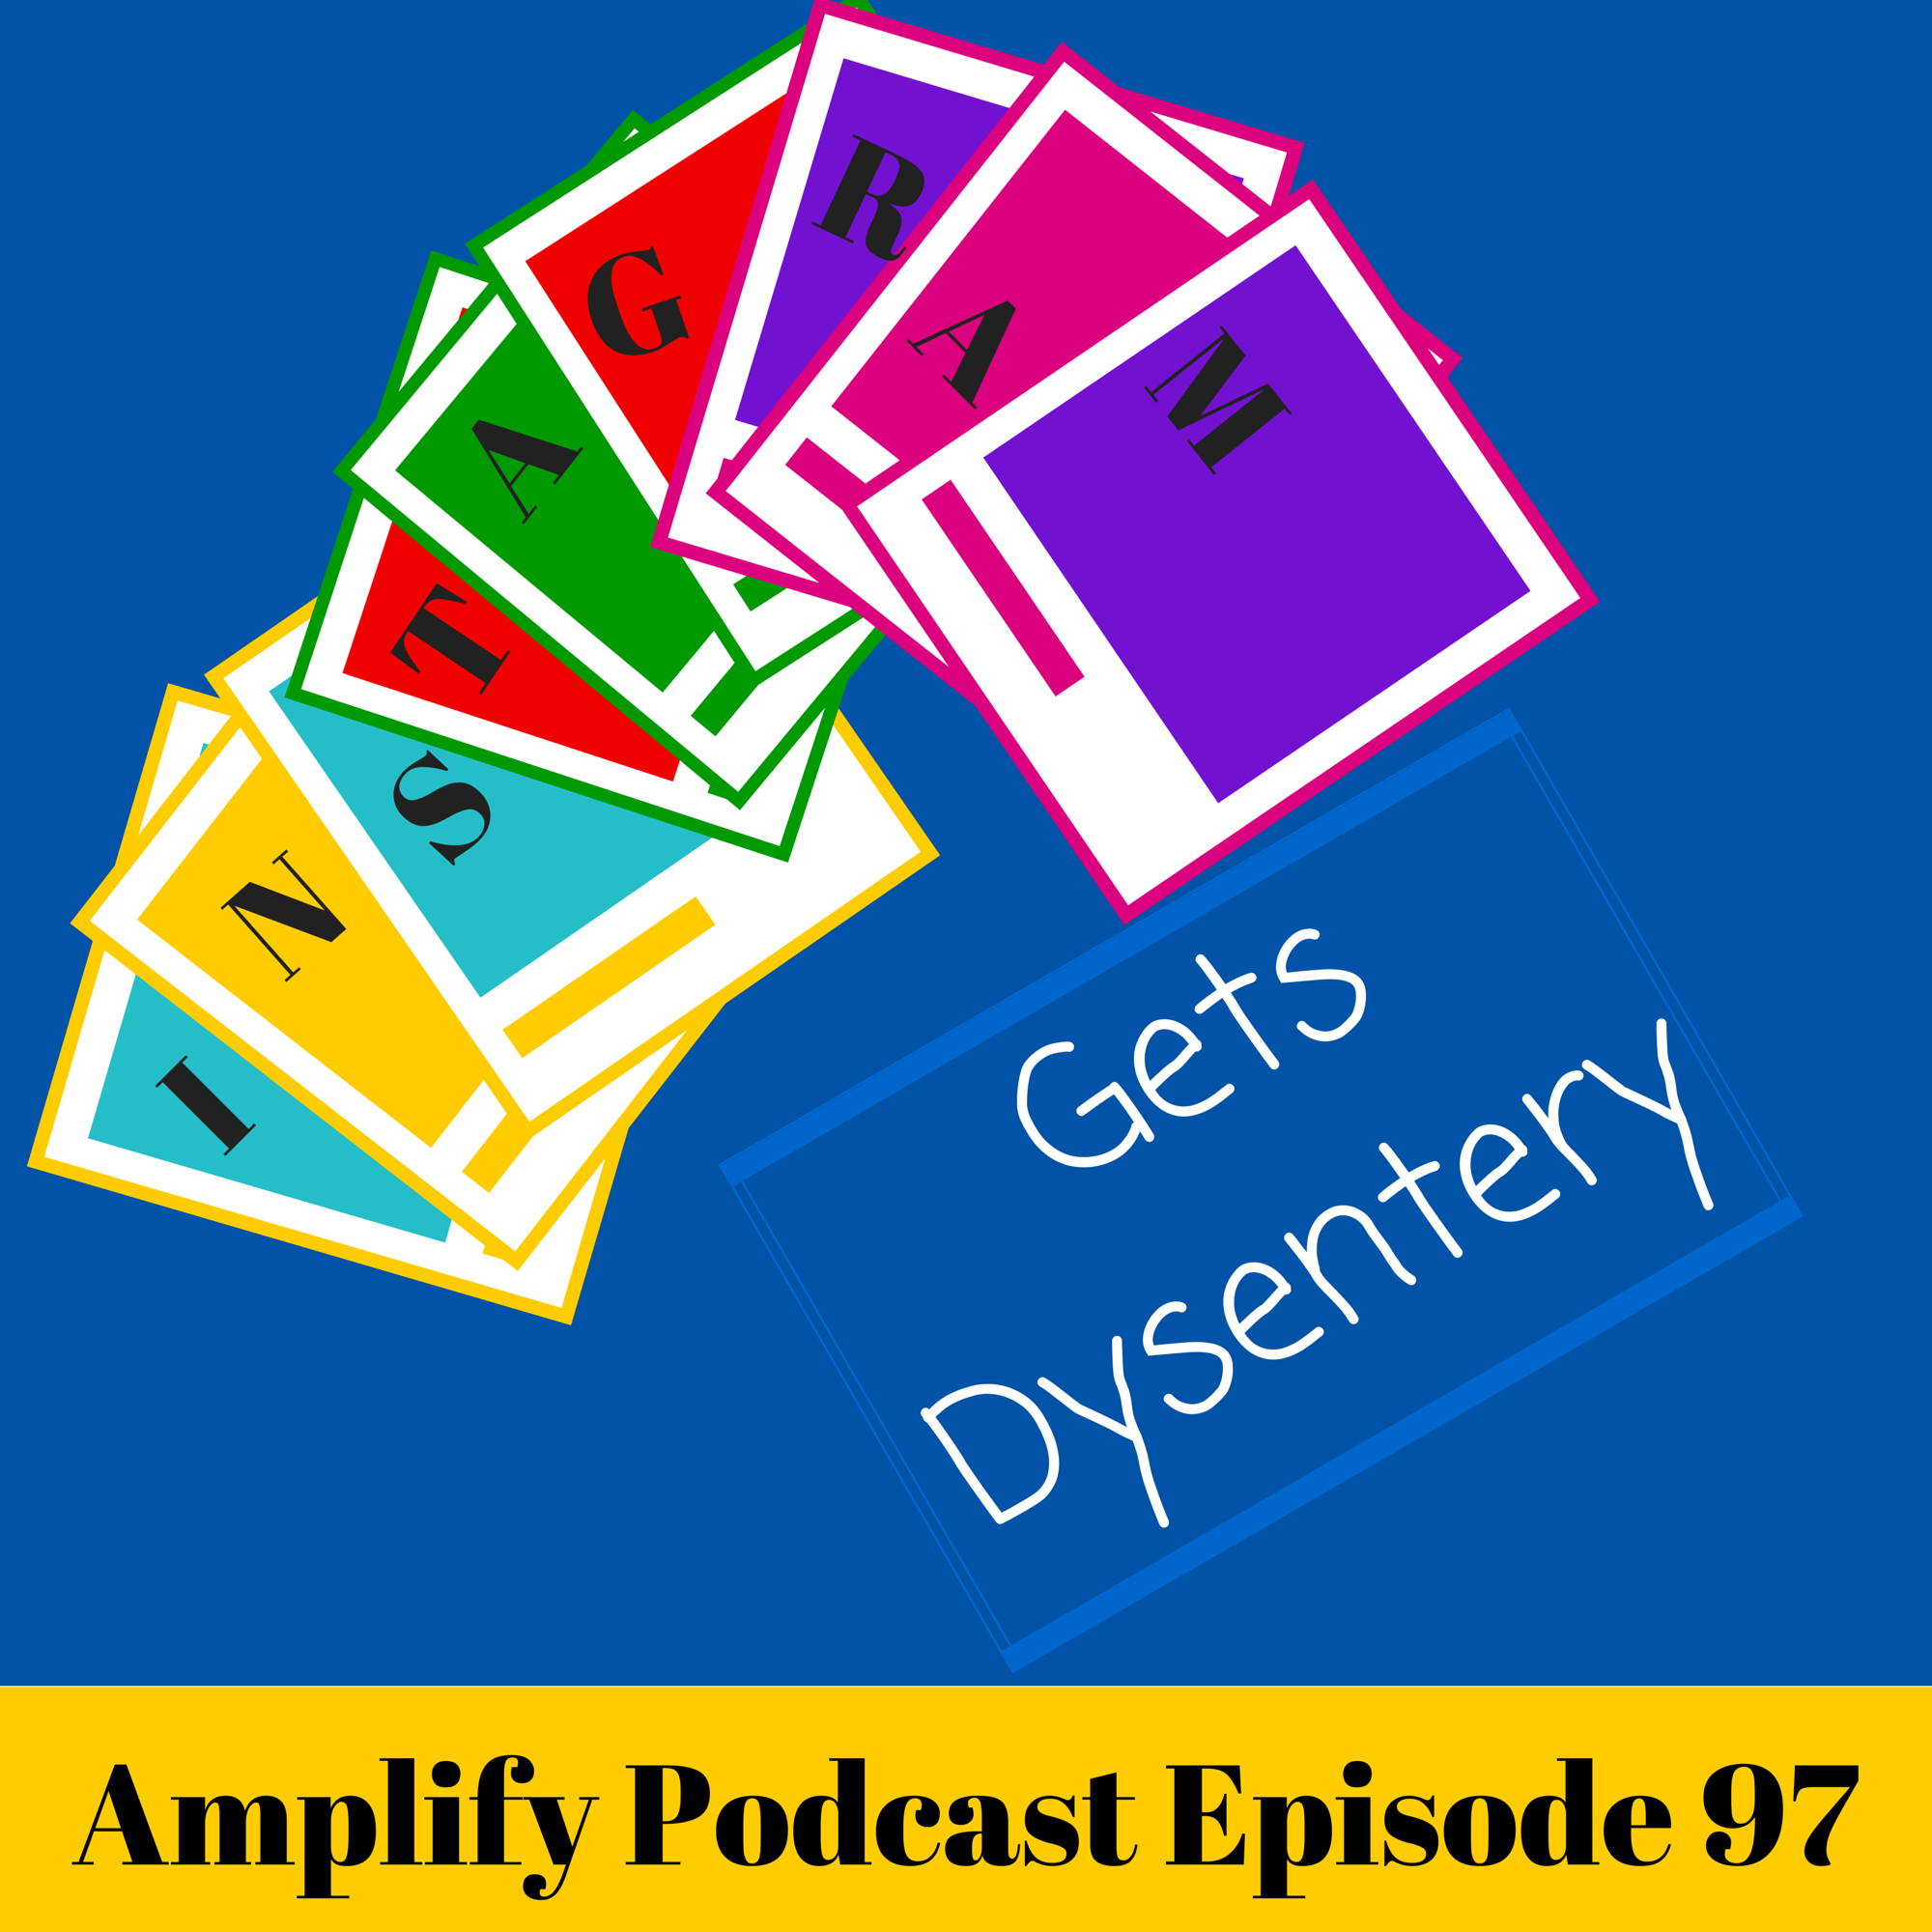 Amplify Podcast Episode 97